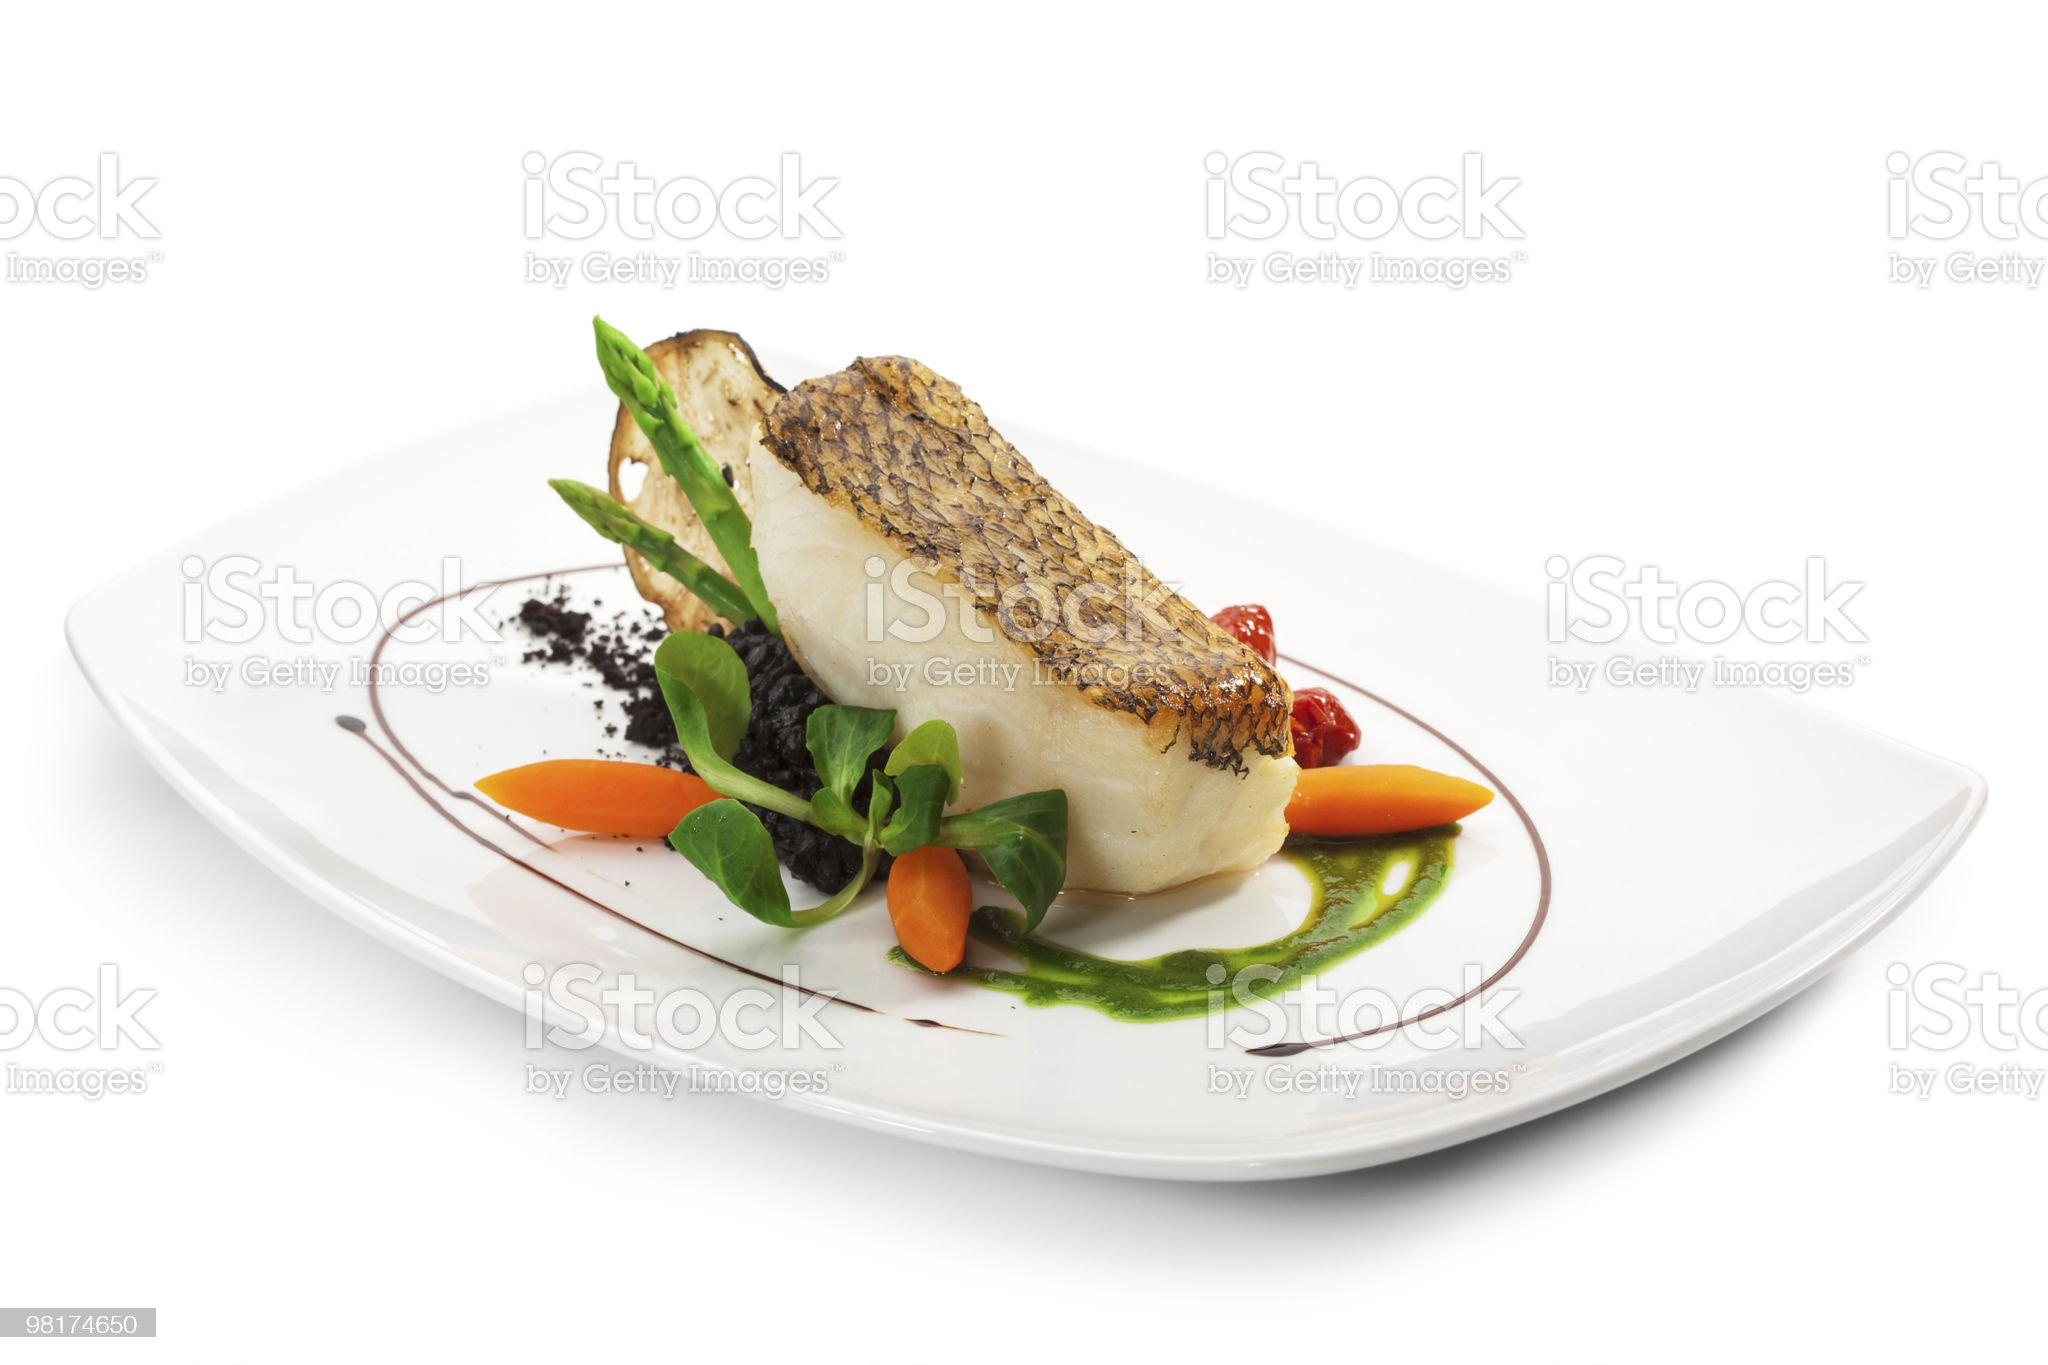 Grilled black sea bass served with vegetables royalty-free stock photo